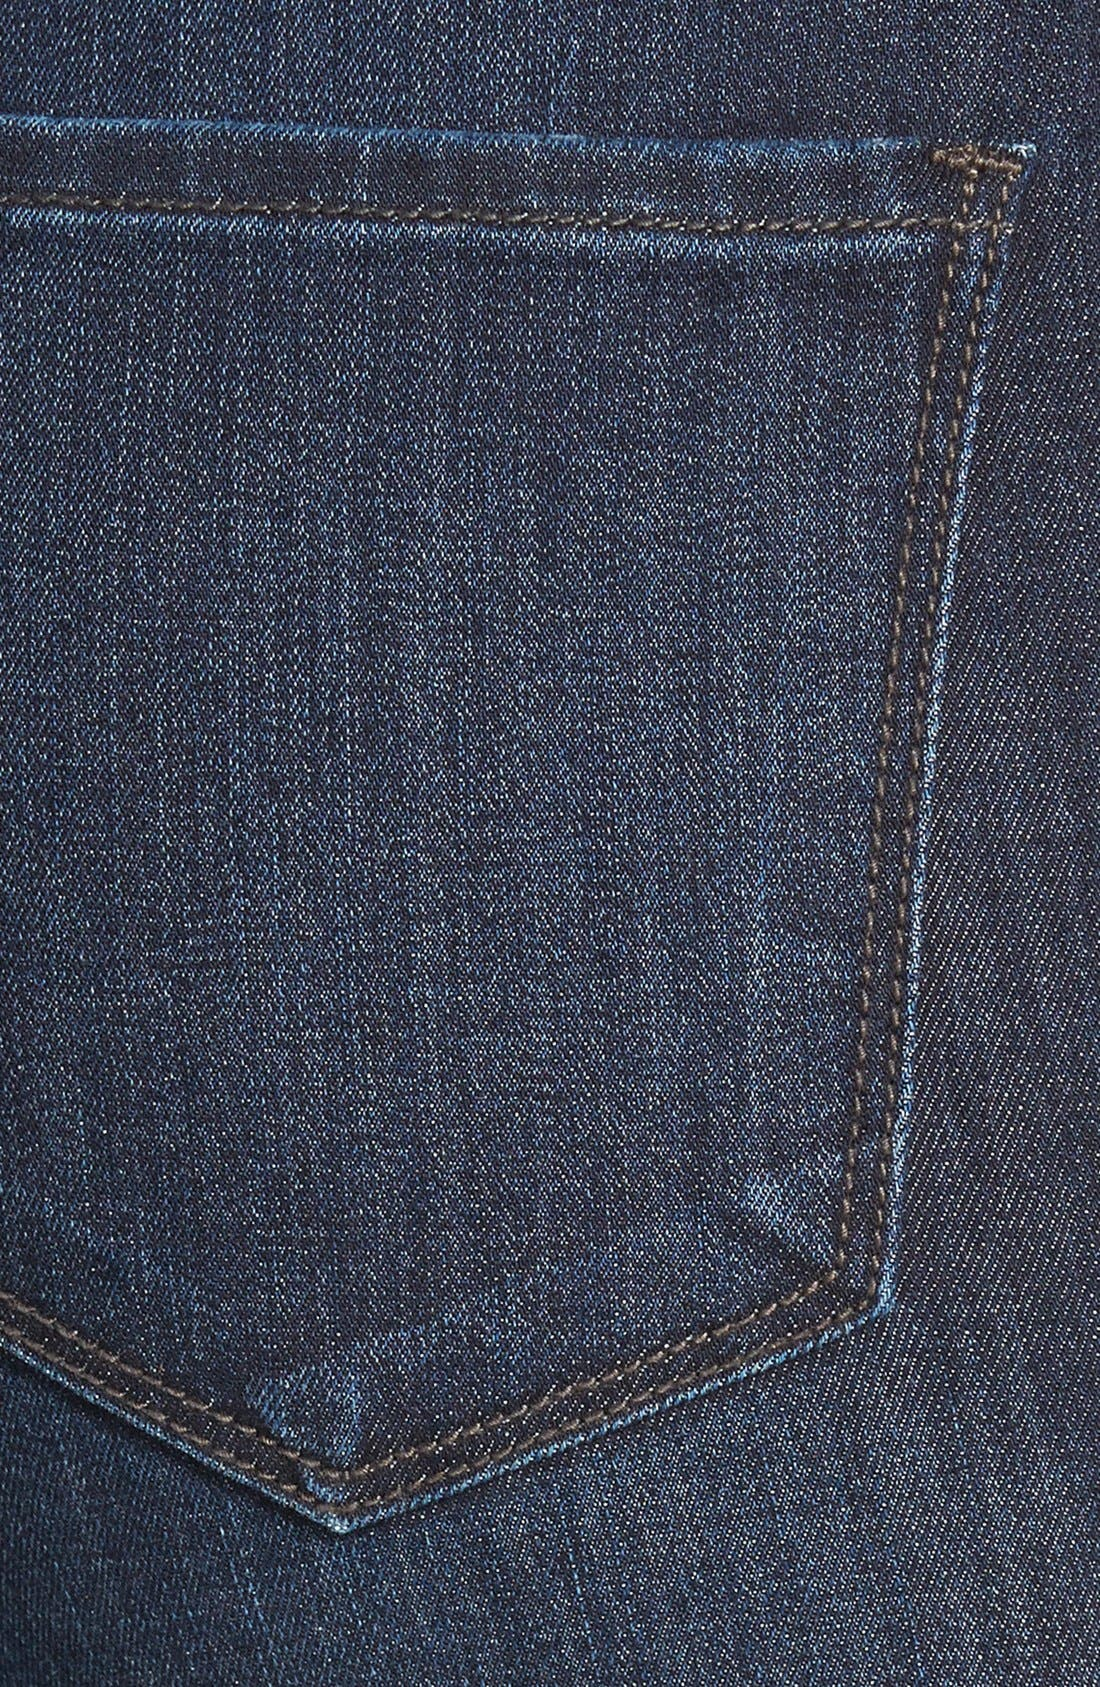 'Brooke' Stretch Bootcut Jeans,                             Alternate thumbnail 4, color,                             421